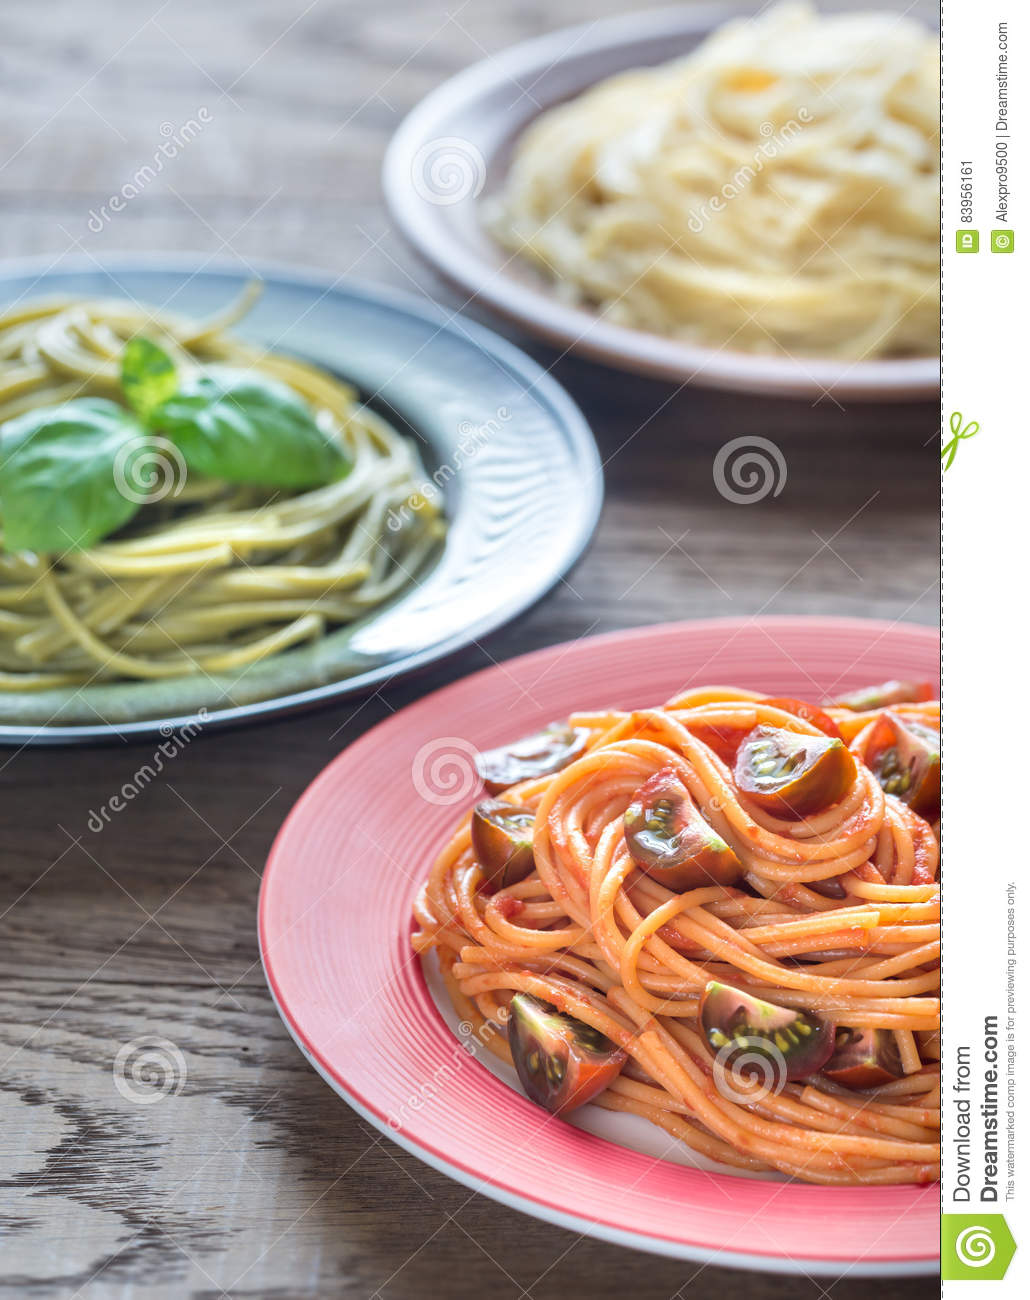 Portions of colorful spaghetti with ingredients